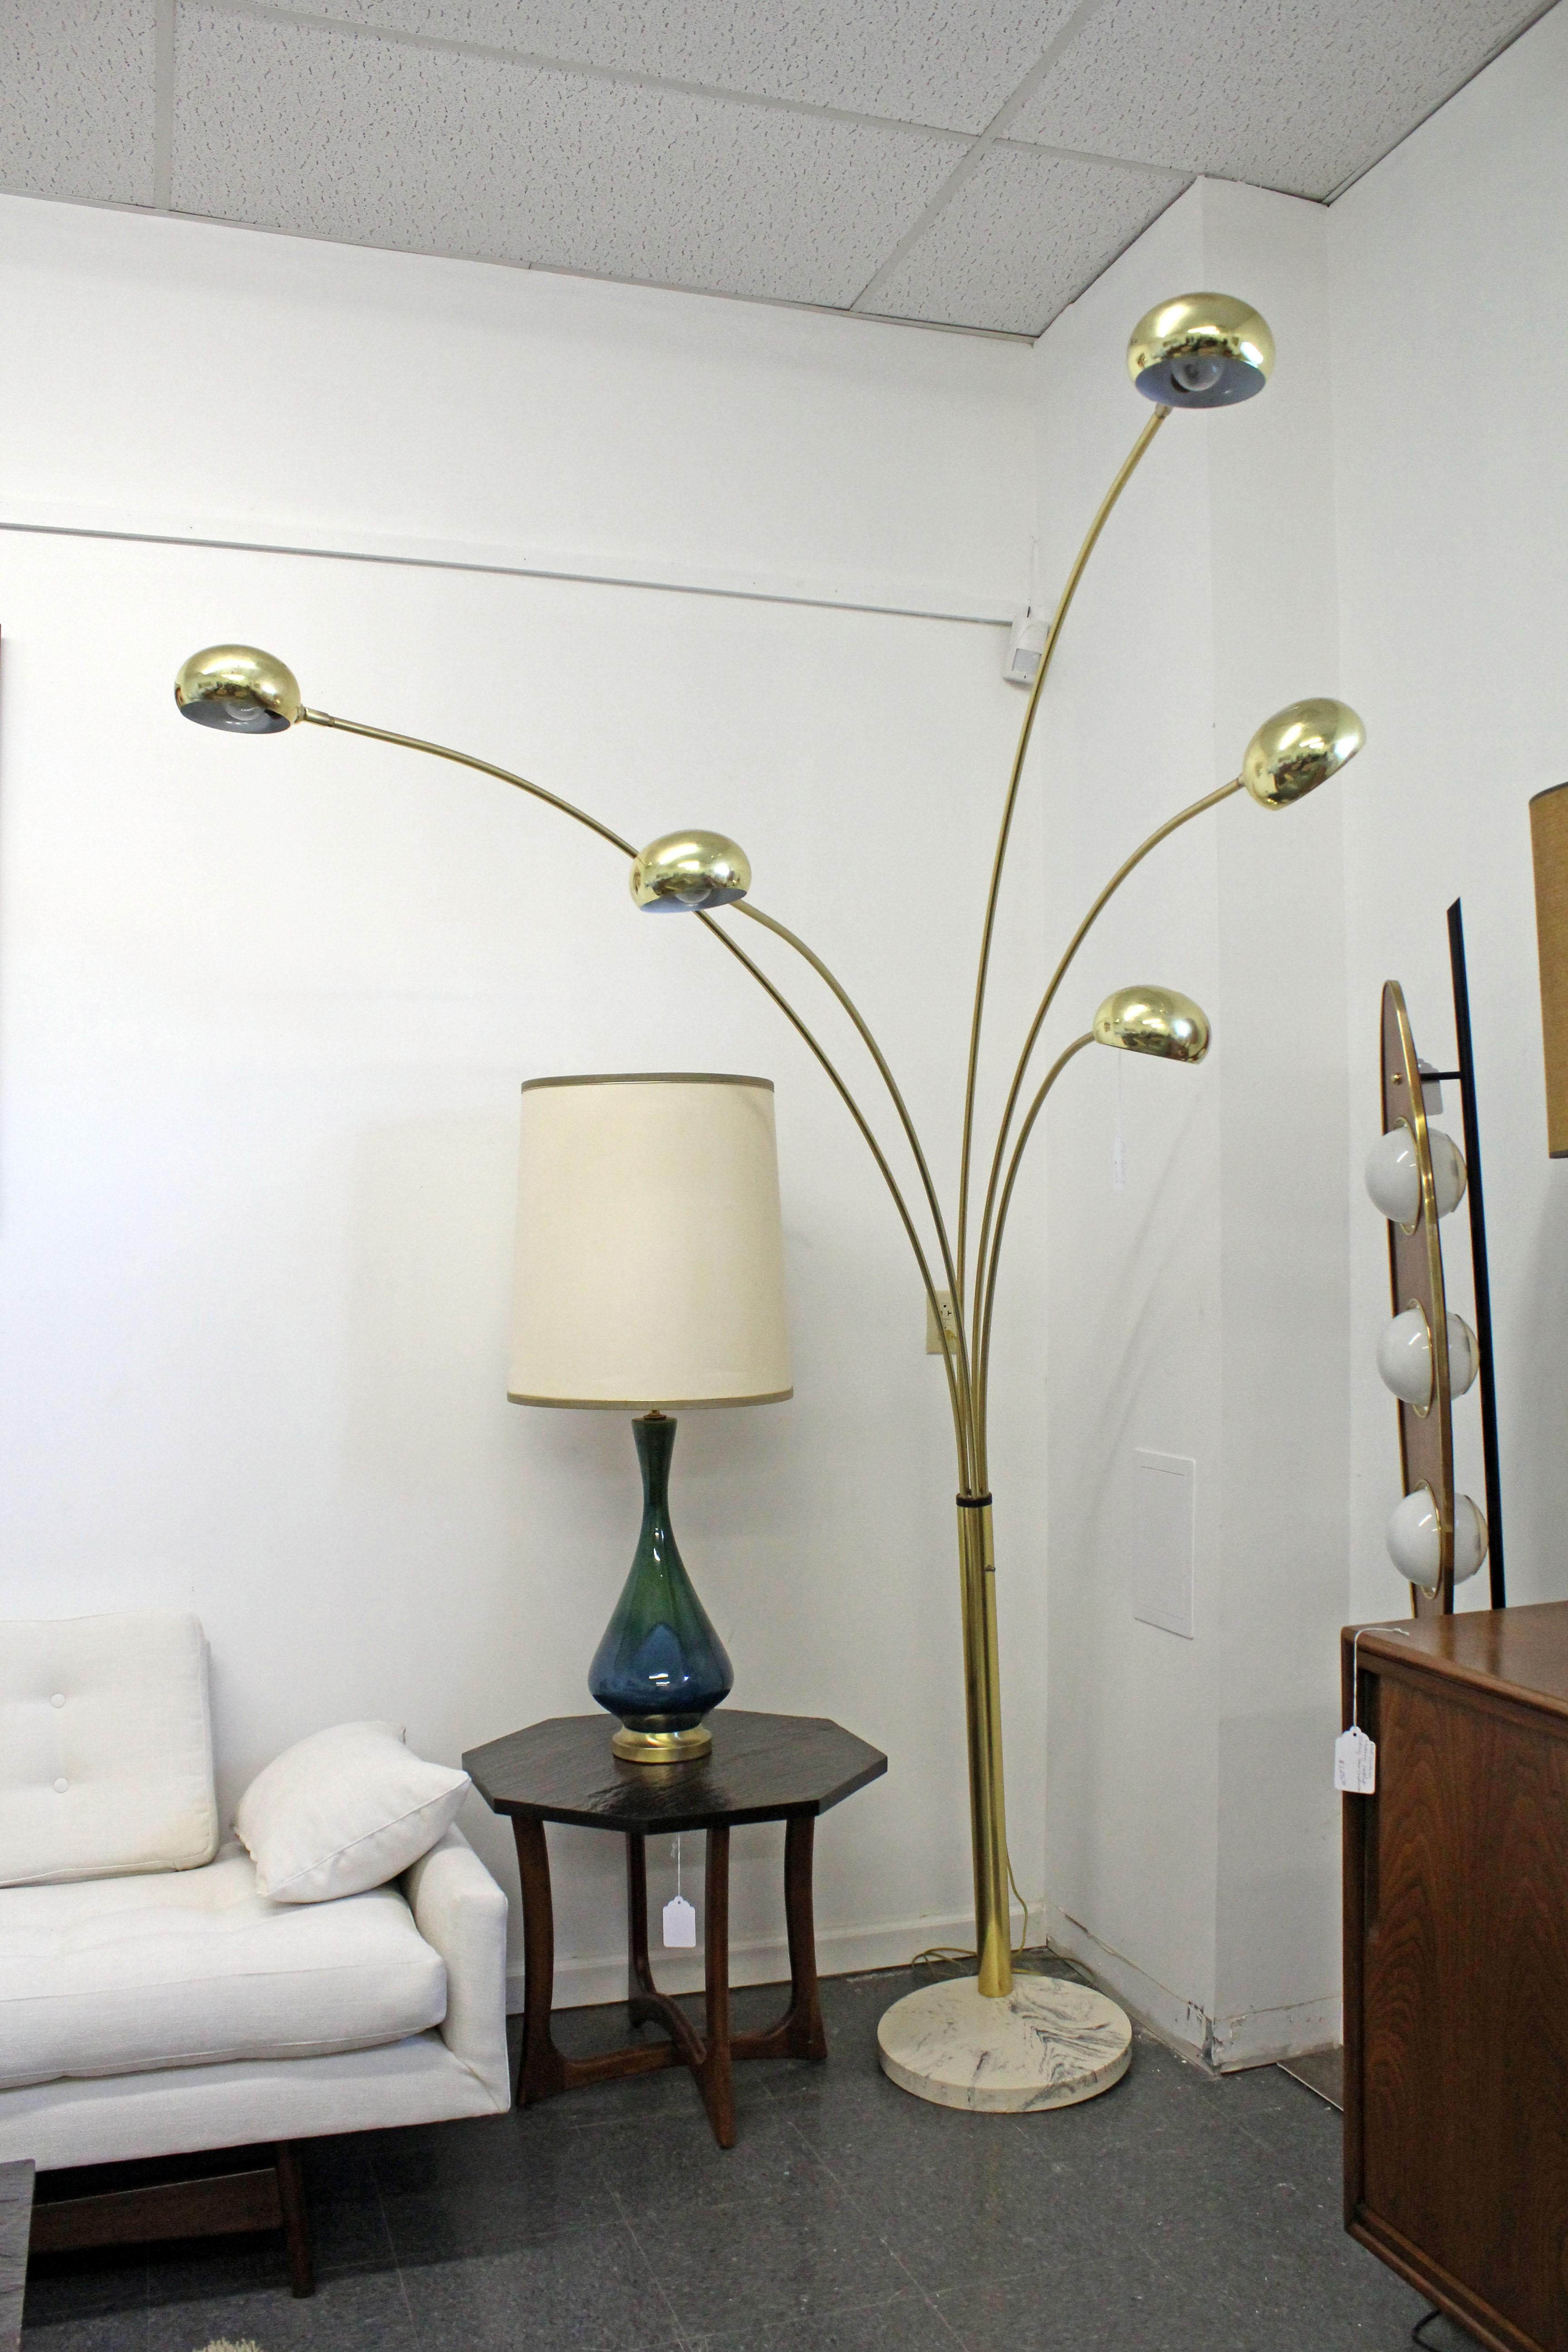 Terrific Mid Century Modern Italian Brass And Marble Guzzini Style 3 Way Arc Floor Lamp Ibusinesslaw Wood Chair Design Ideas Ibusinesslaworg